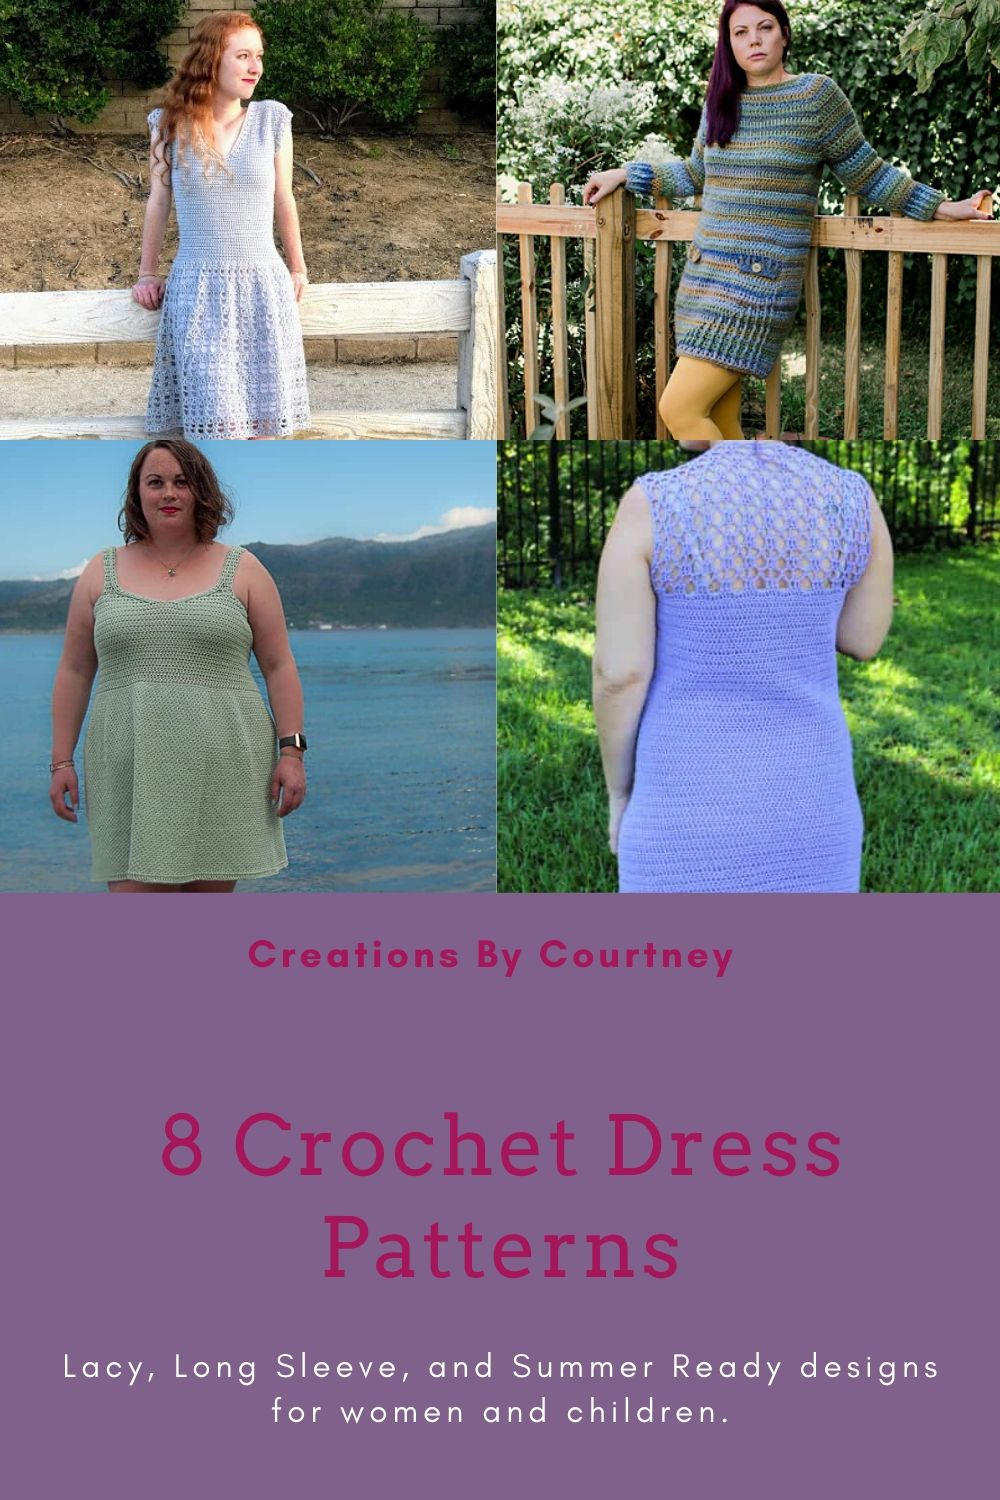 Check out this collection of crochet dress patterns to fit every size and style. From lacy details to tunic styles for cooler weather, and even a tunisian dress for babies. #crochetpatternroundup #crochetpatterns #crochetgarment #crochetdress